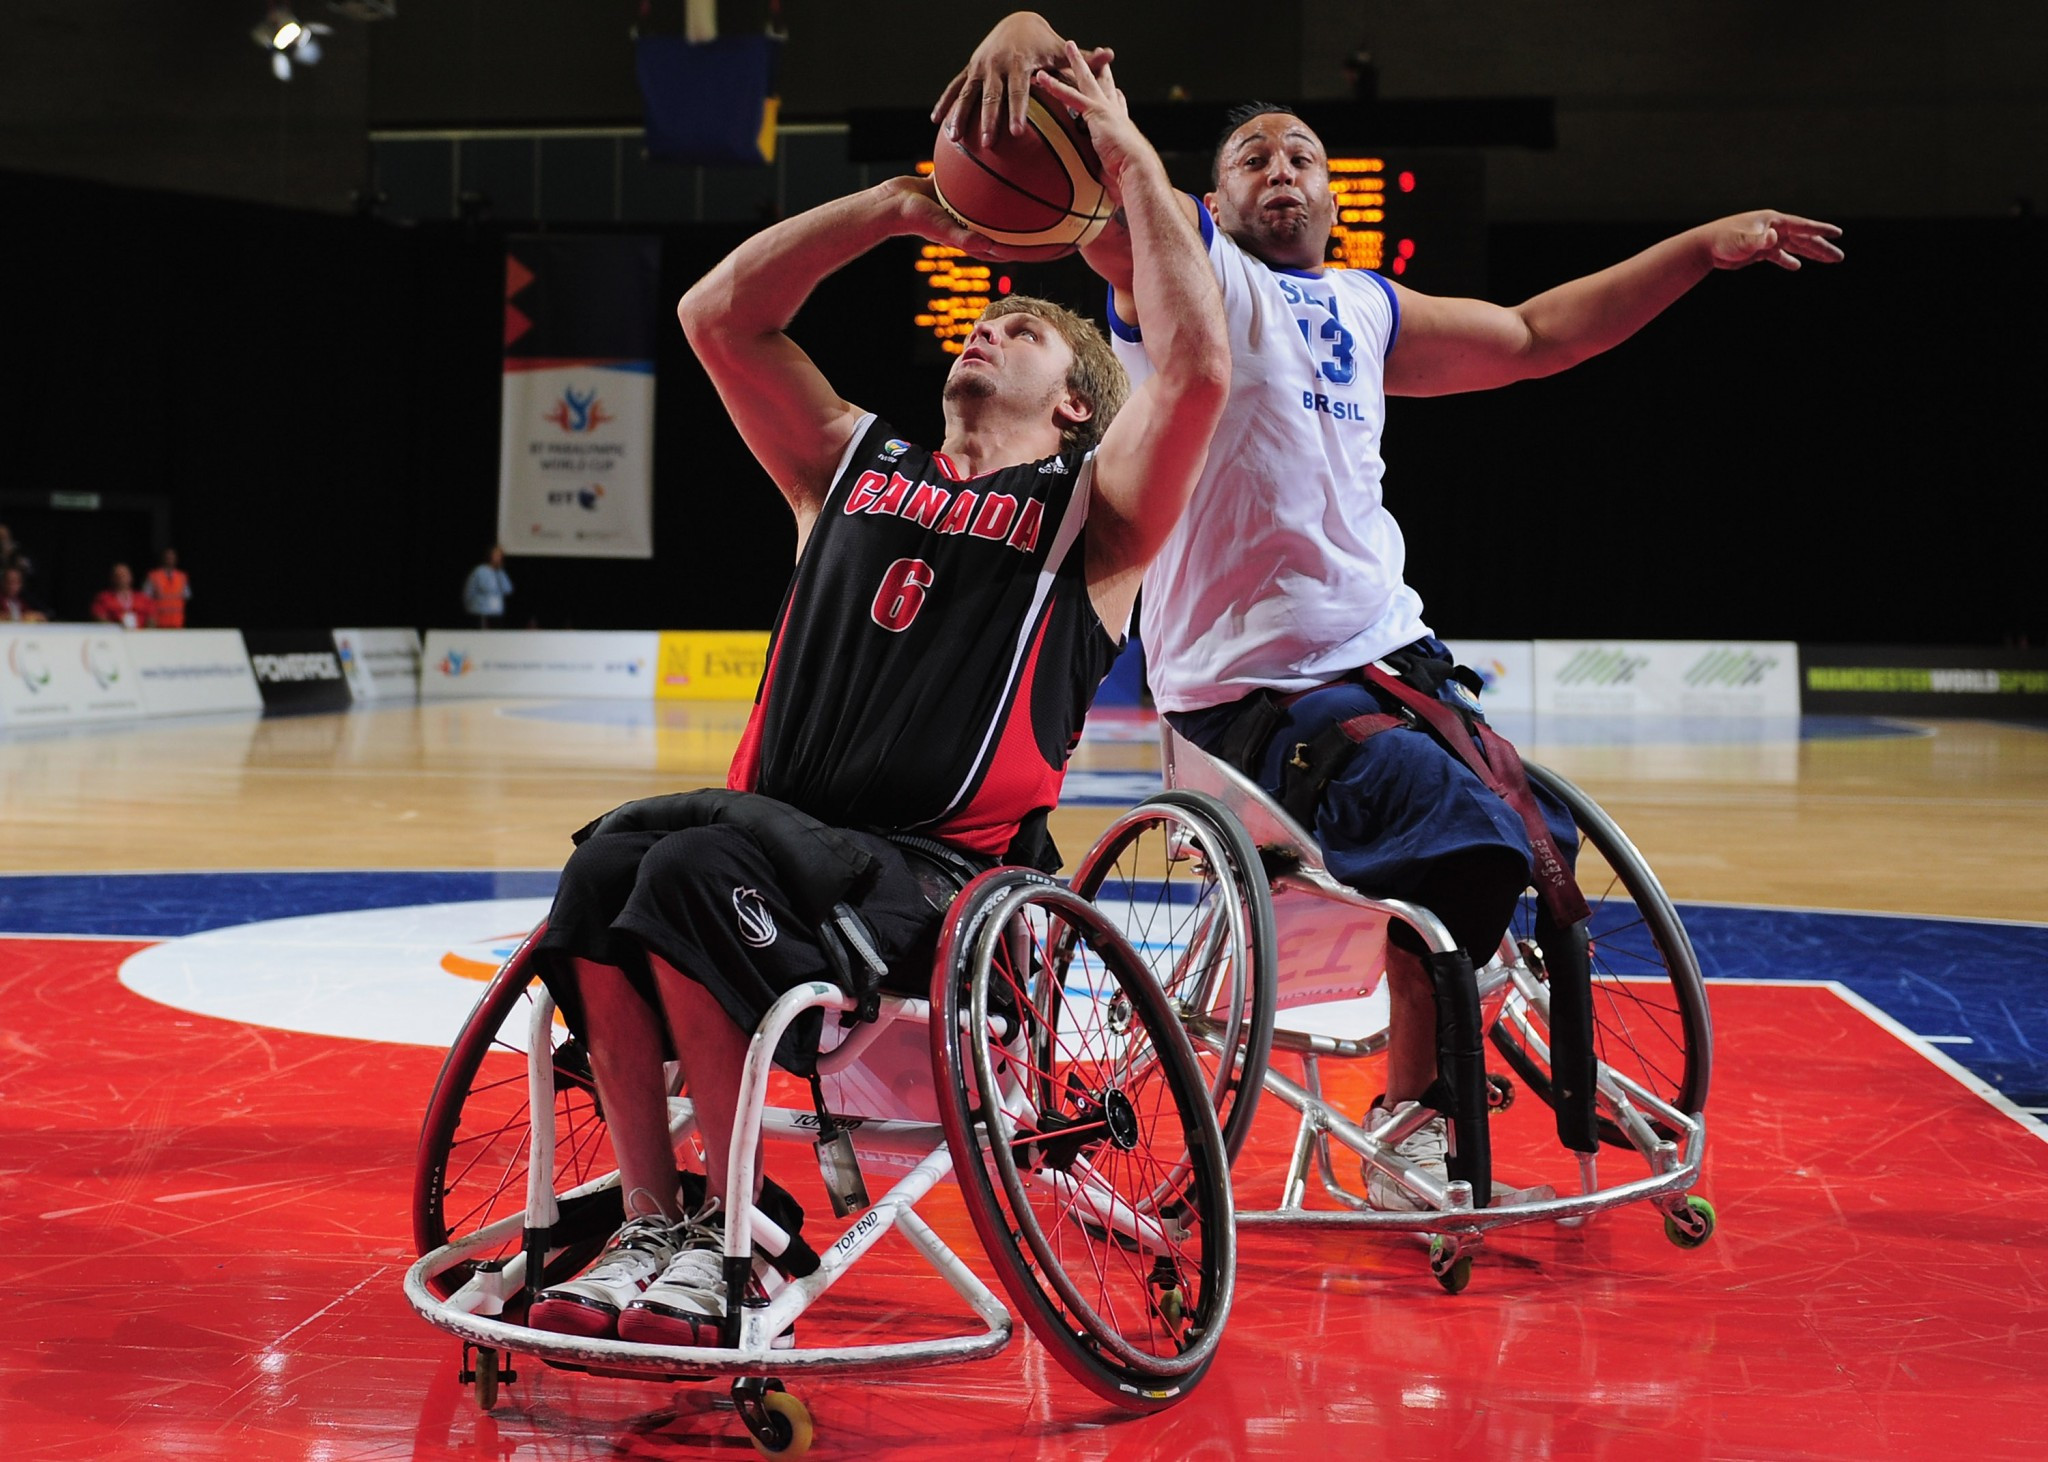 Hedges says Canada are focused on qualifying for IWBF World Championships